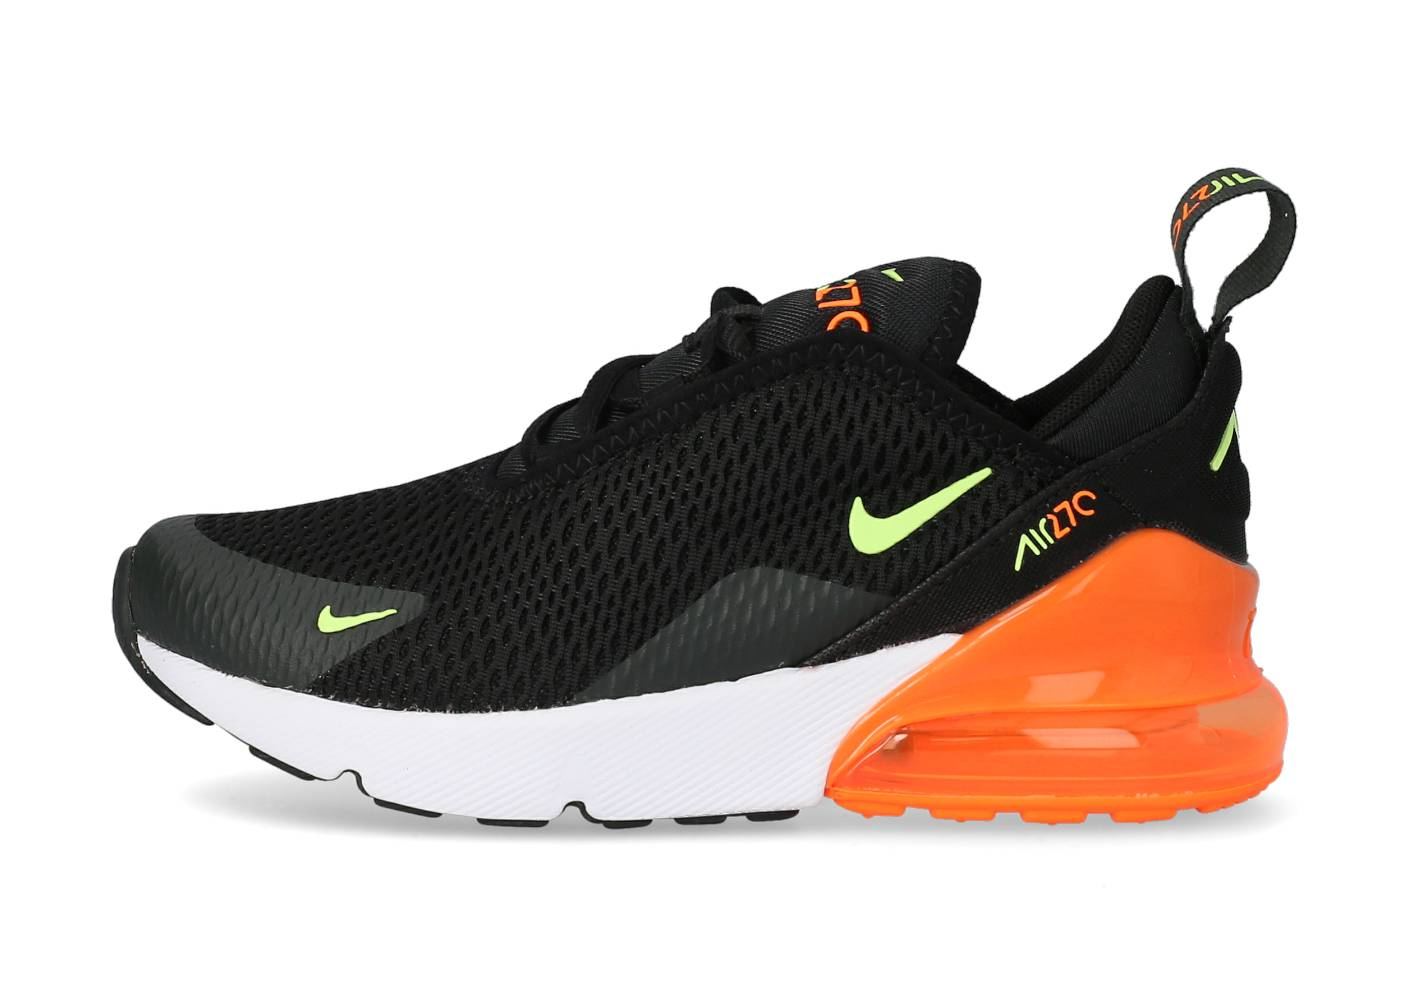 Nike Running Nike Air Max 270 Noir Orange Et Vert Enfant 35